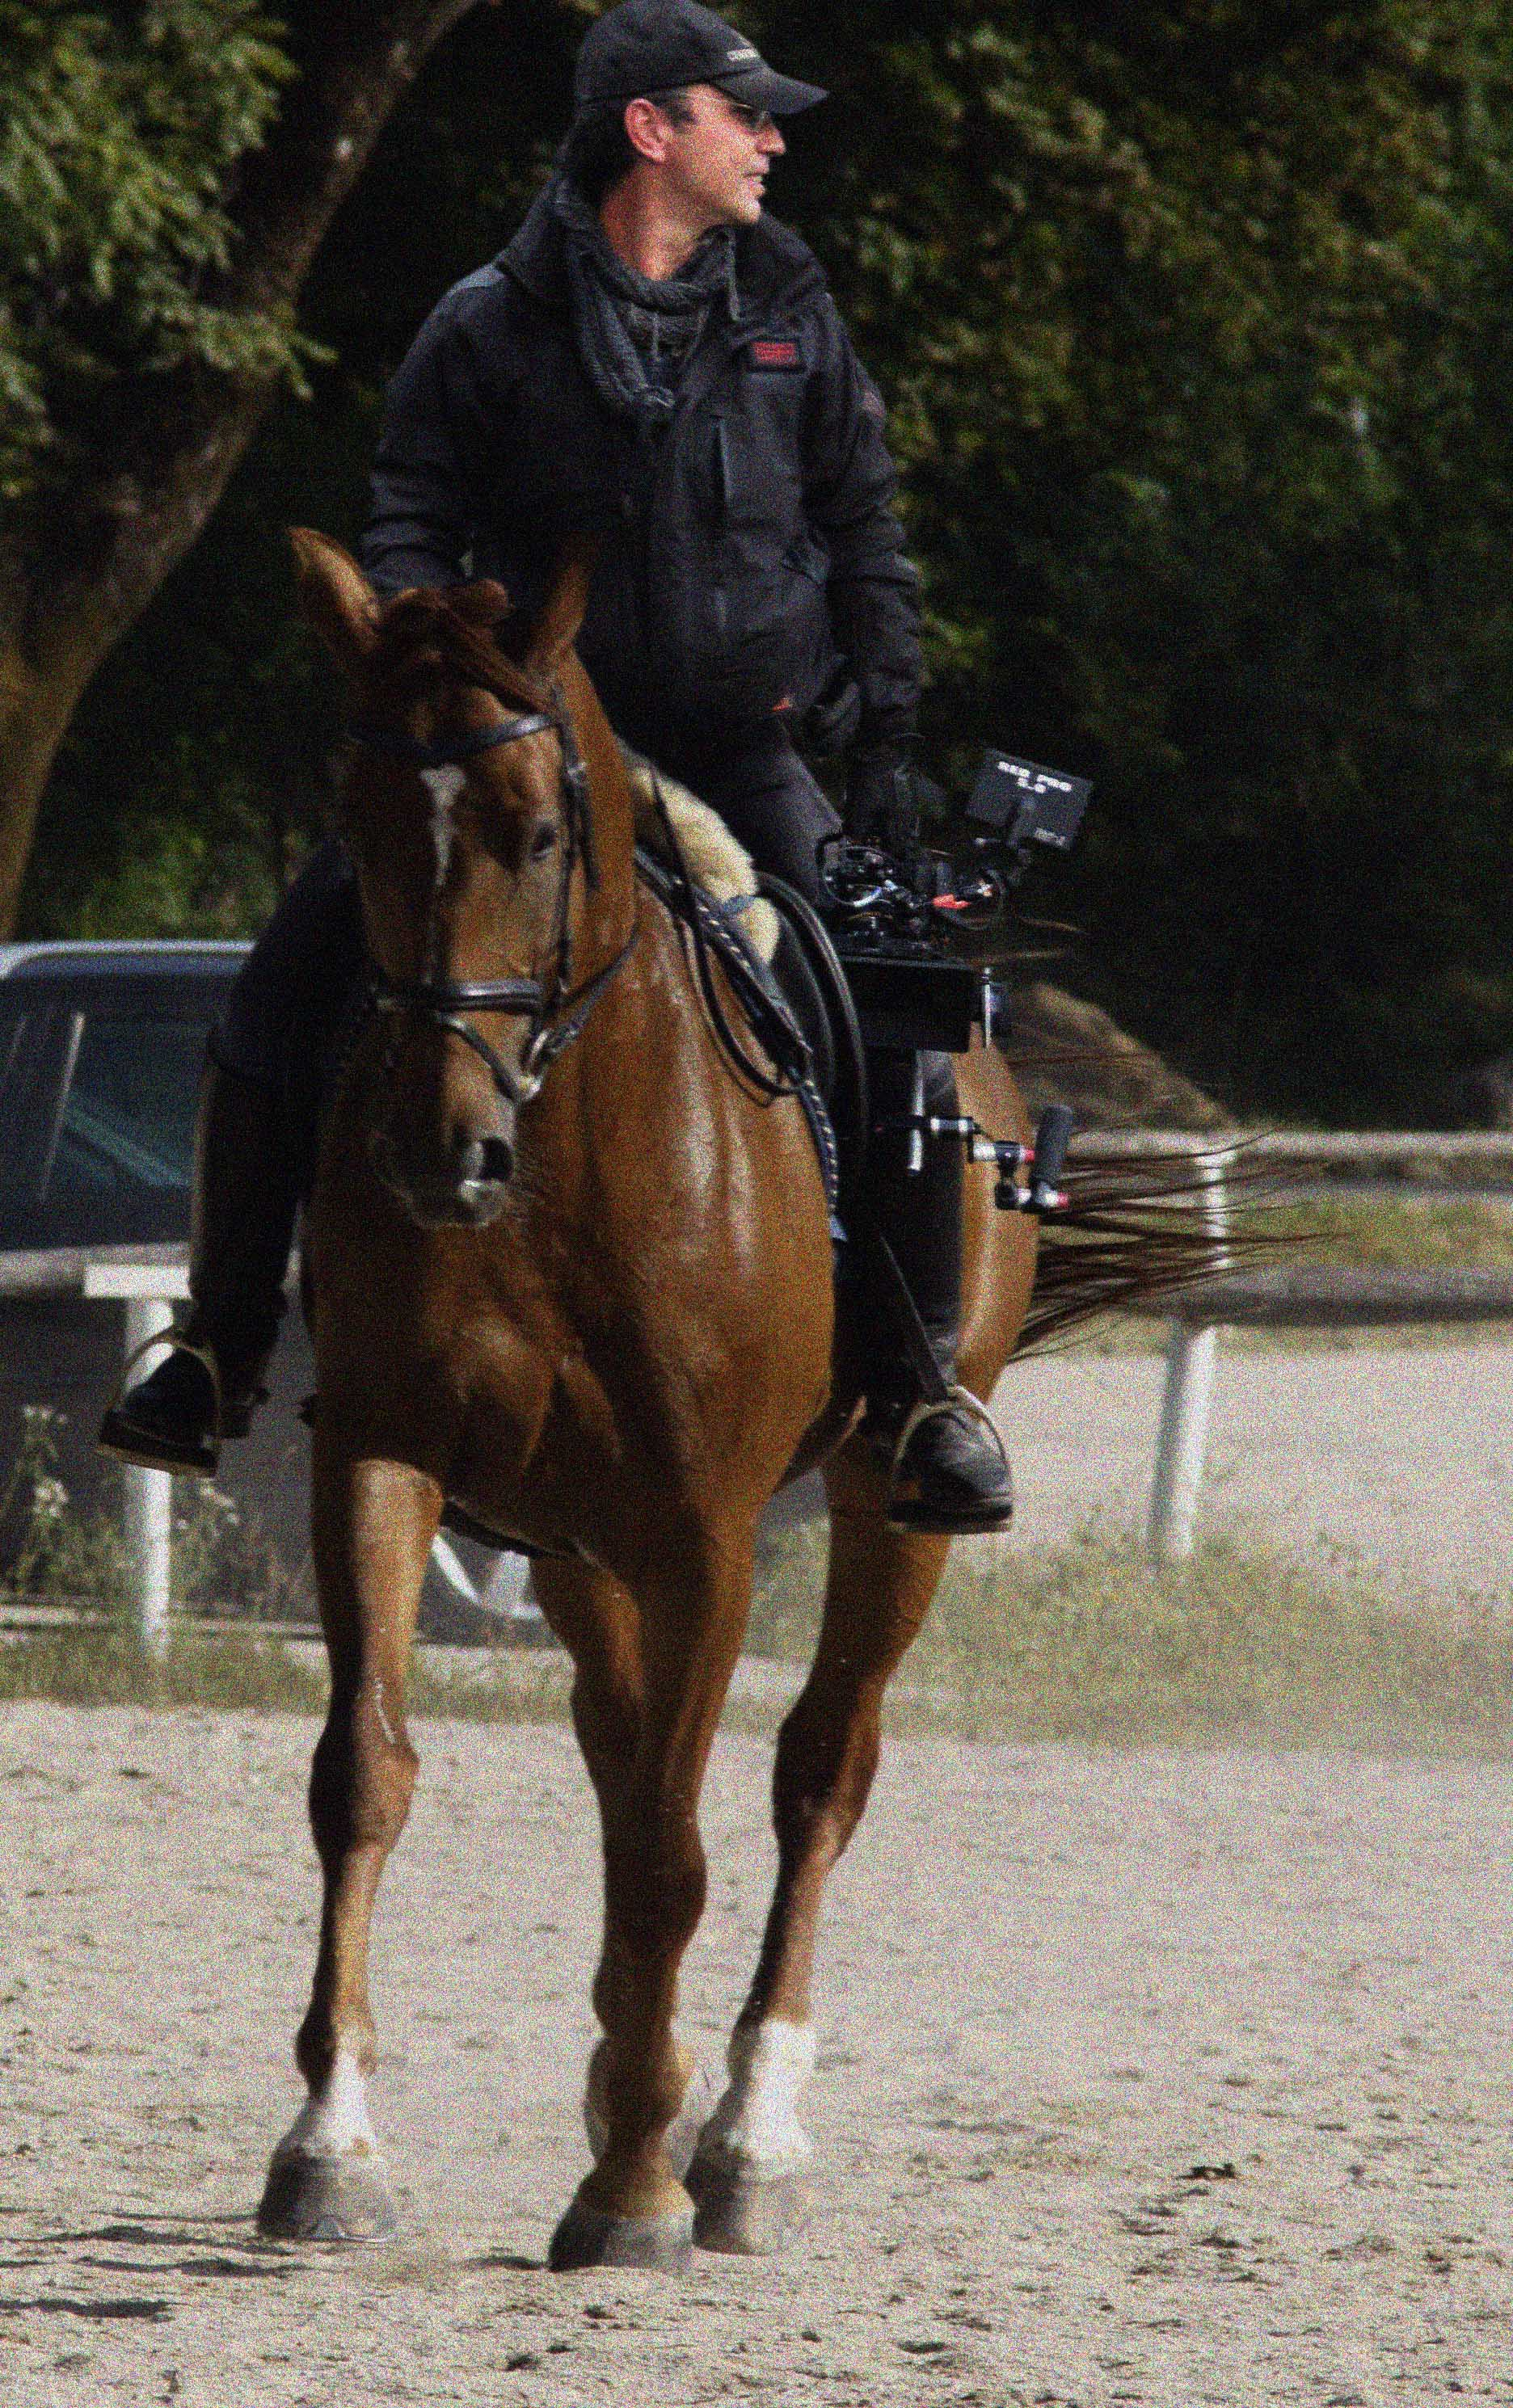 Filming handheld off horse